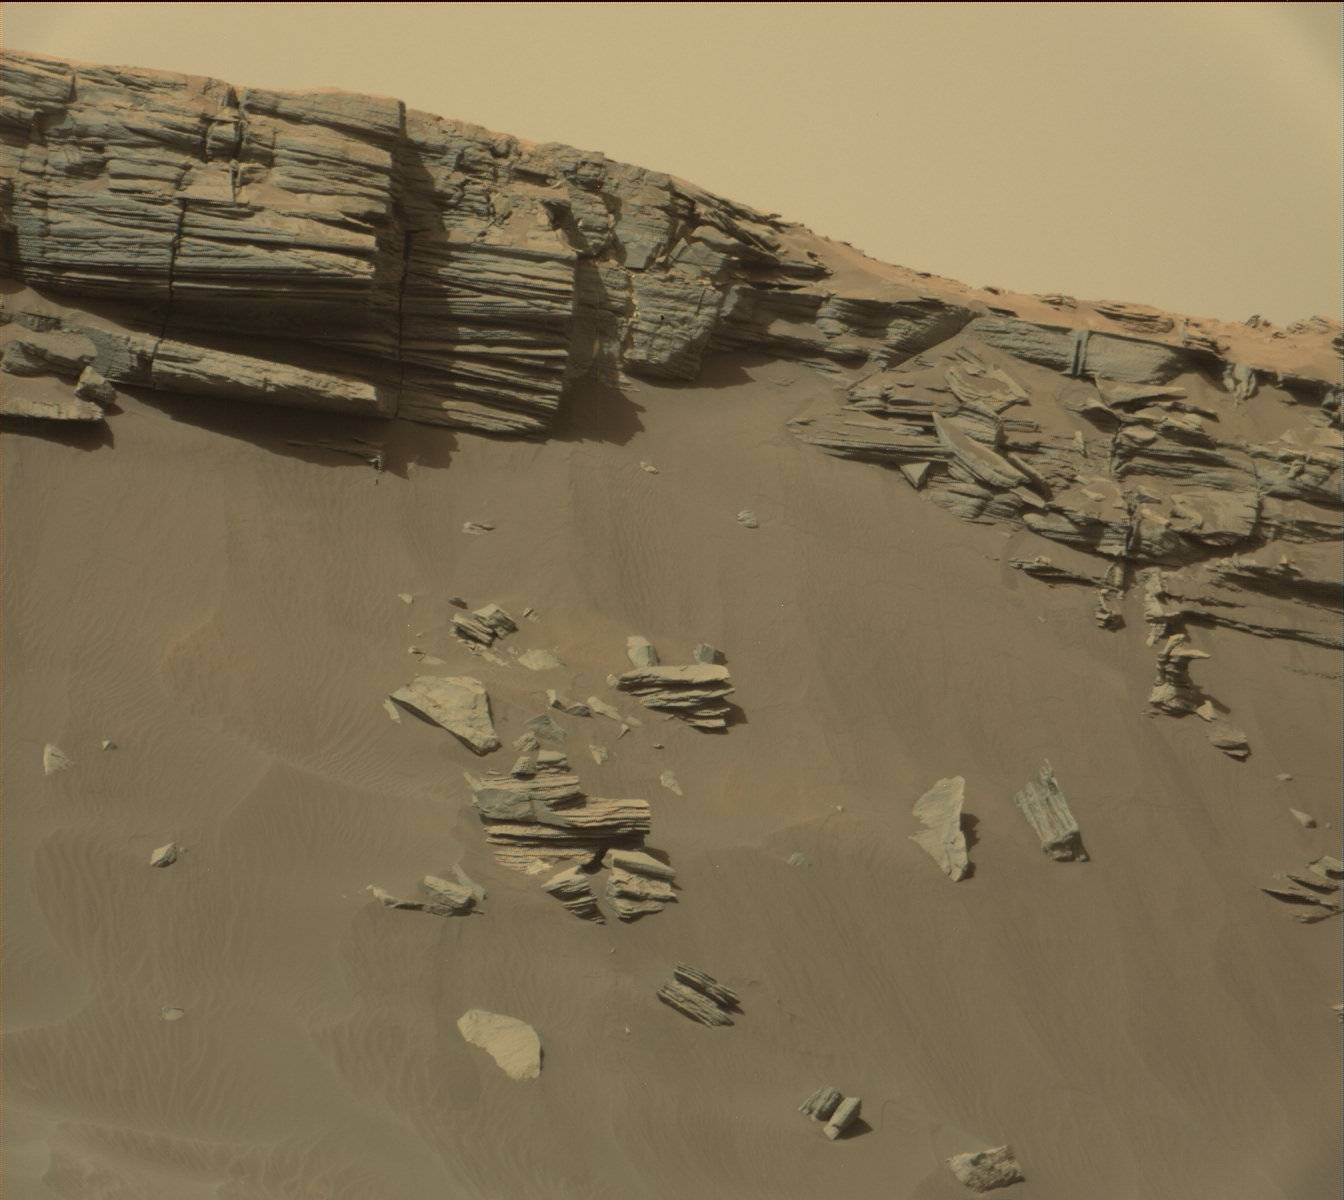 Nasa's Mars rover Curiosity acquired this image using its Mast Camera (Mastcam) on Sol 1381